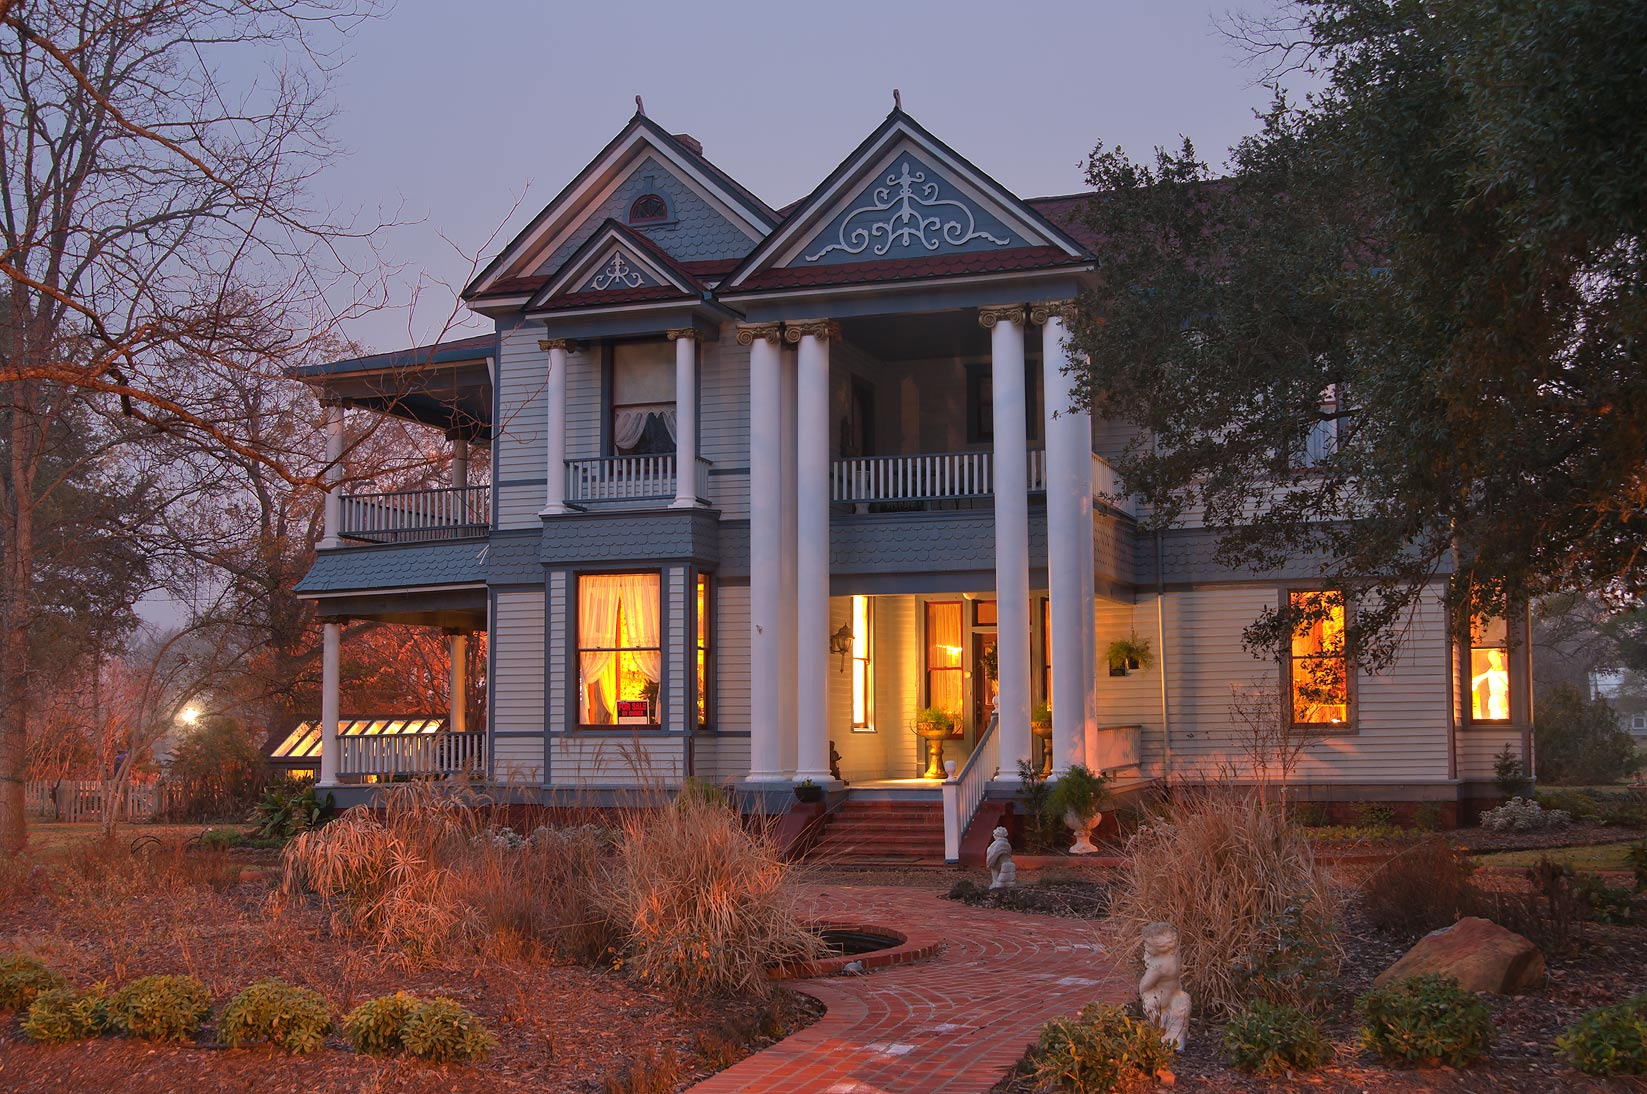 Calvert Inn (P. C. Gibson House, c. 1903) at 406 East Texas St.. Calvert, Texas